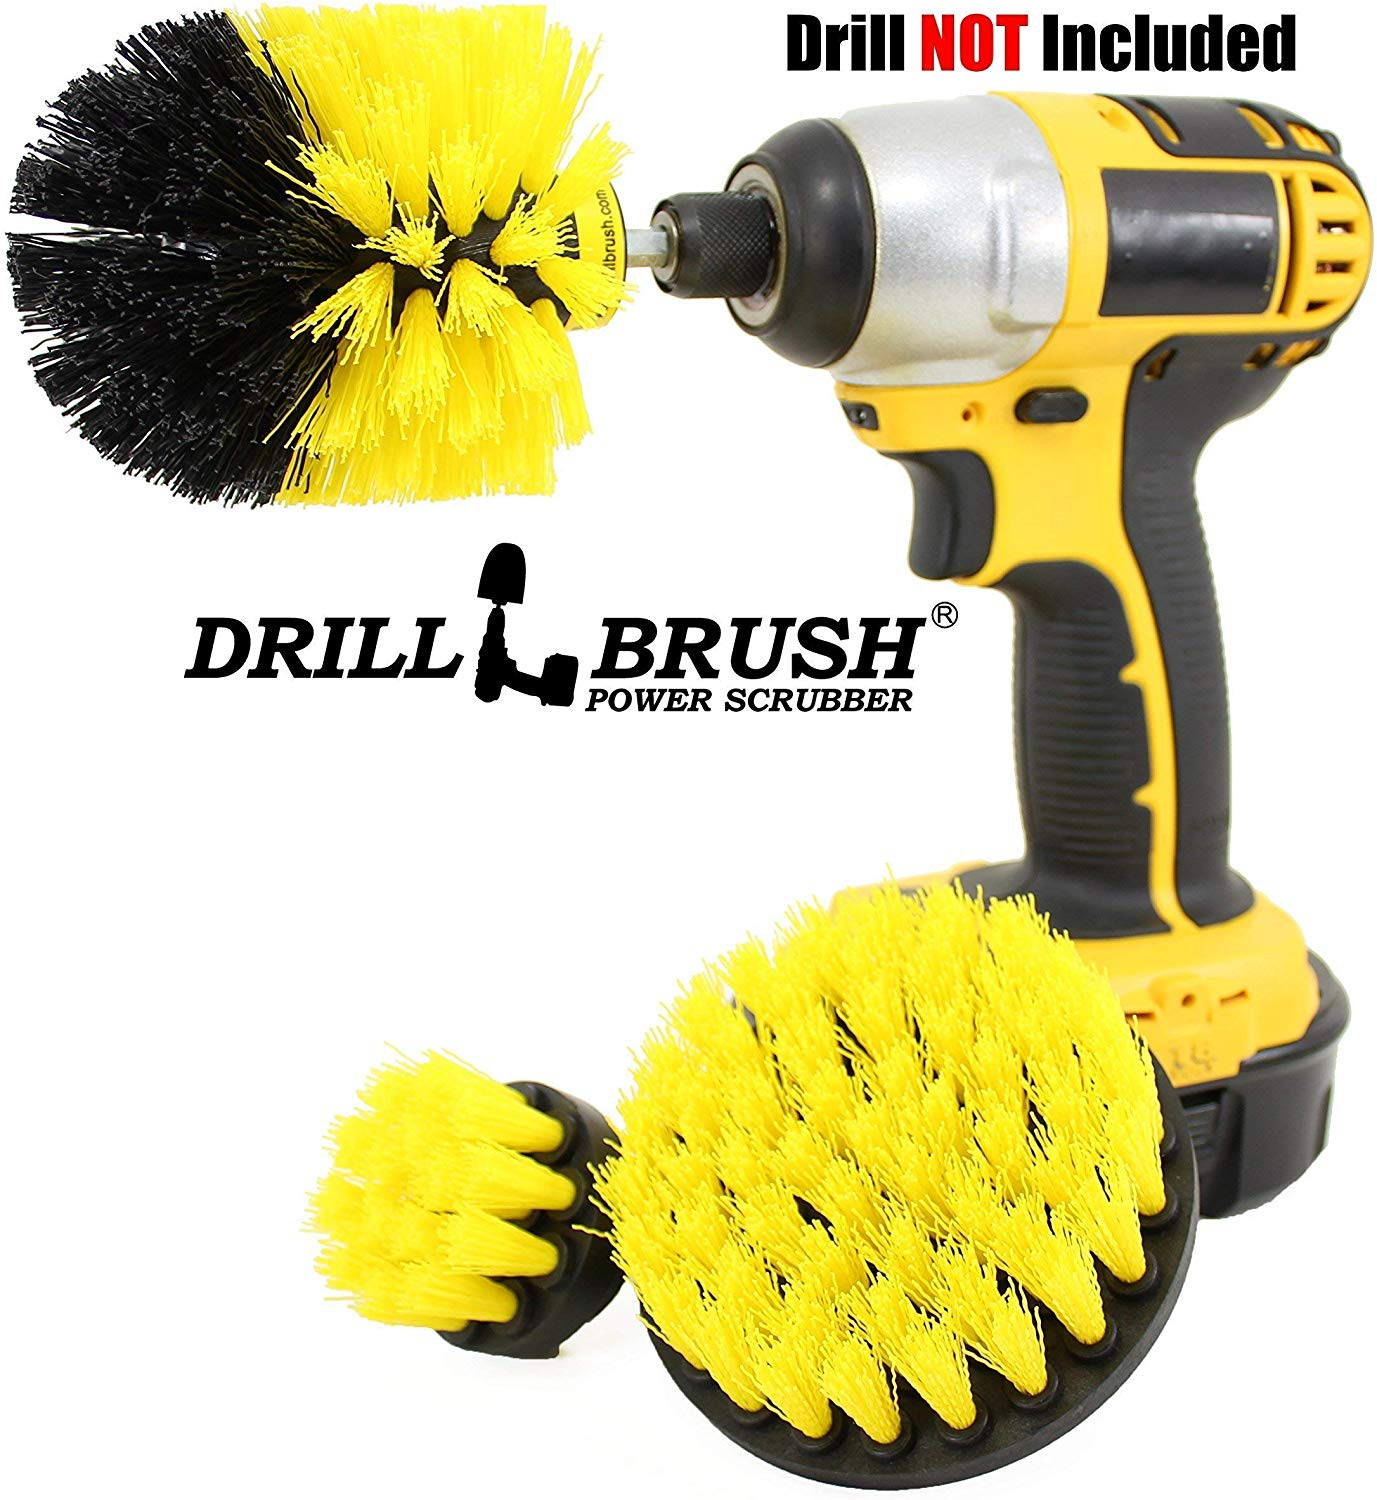 drill brush attachment bathroom surfaces tub shower tile and grout all purpose power scrubber cleaning kit for your cordless drill power scrubber